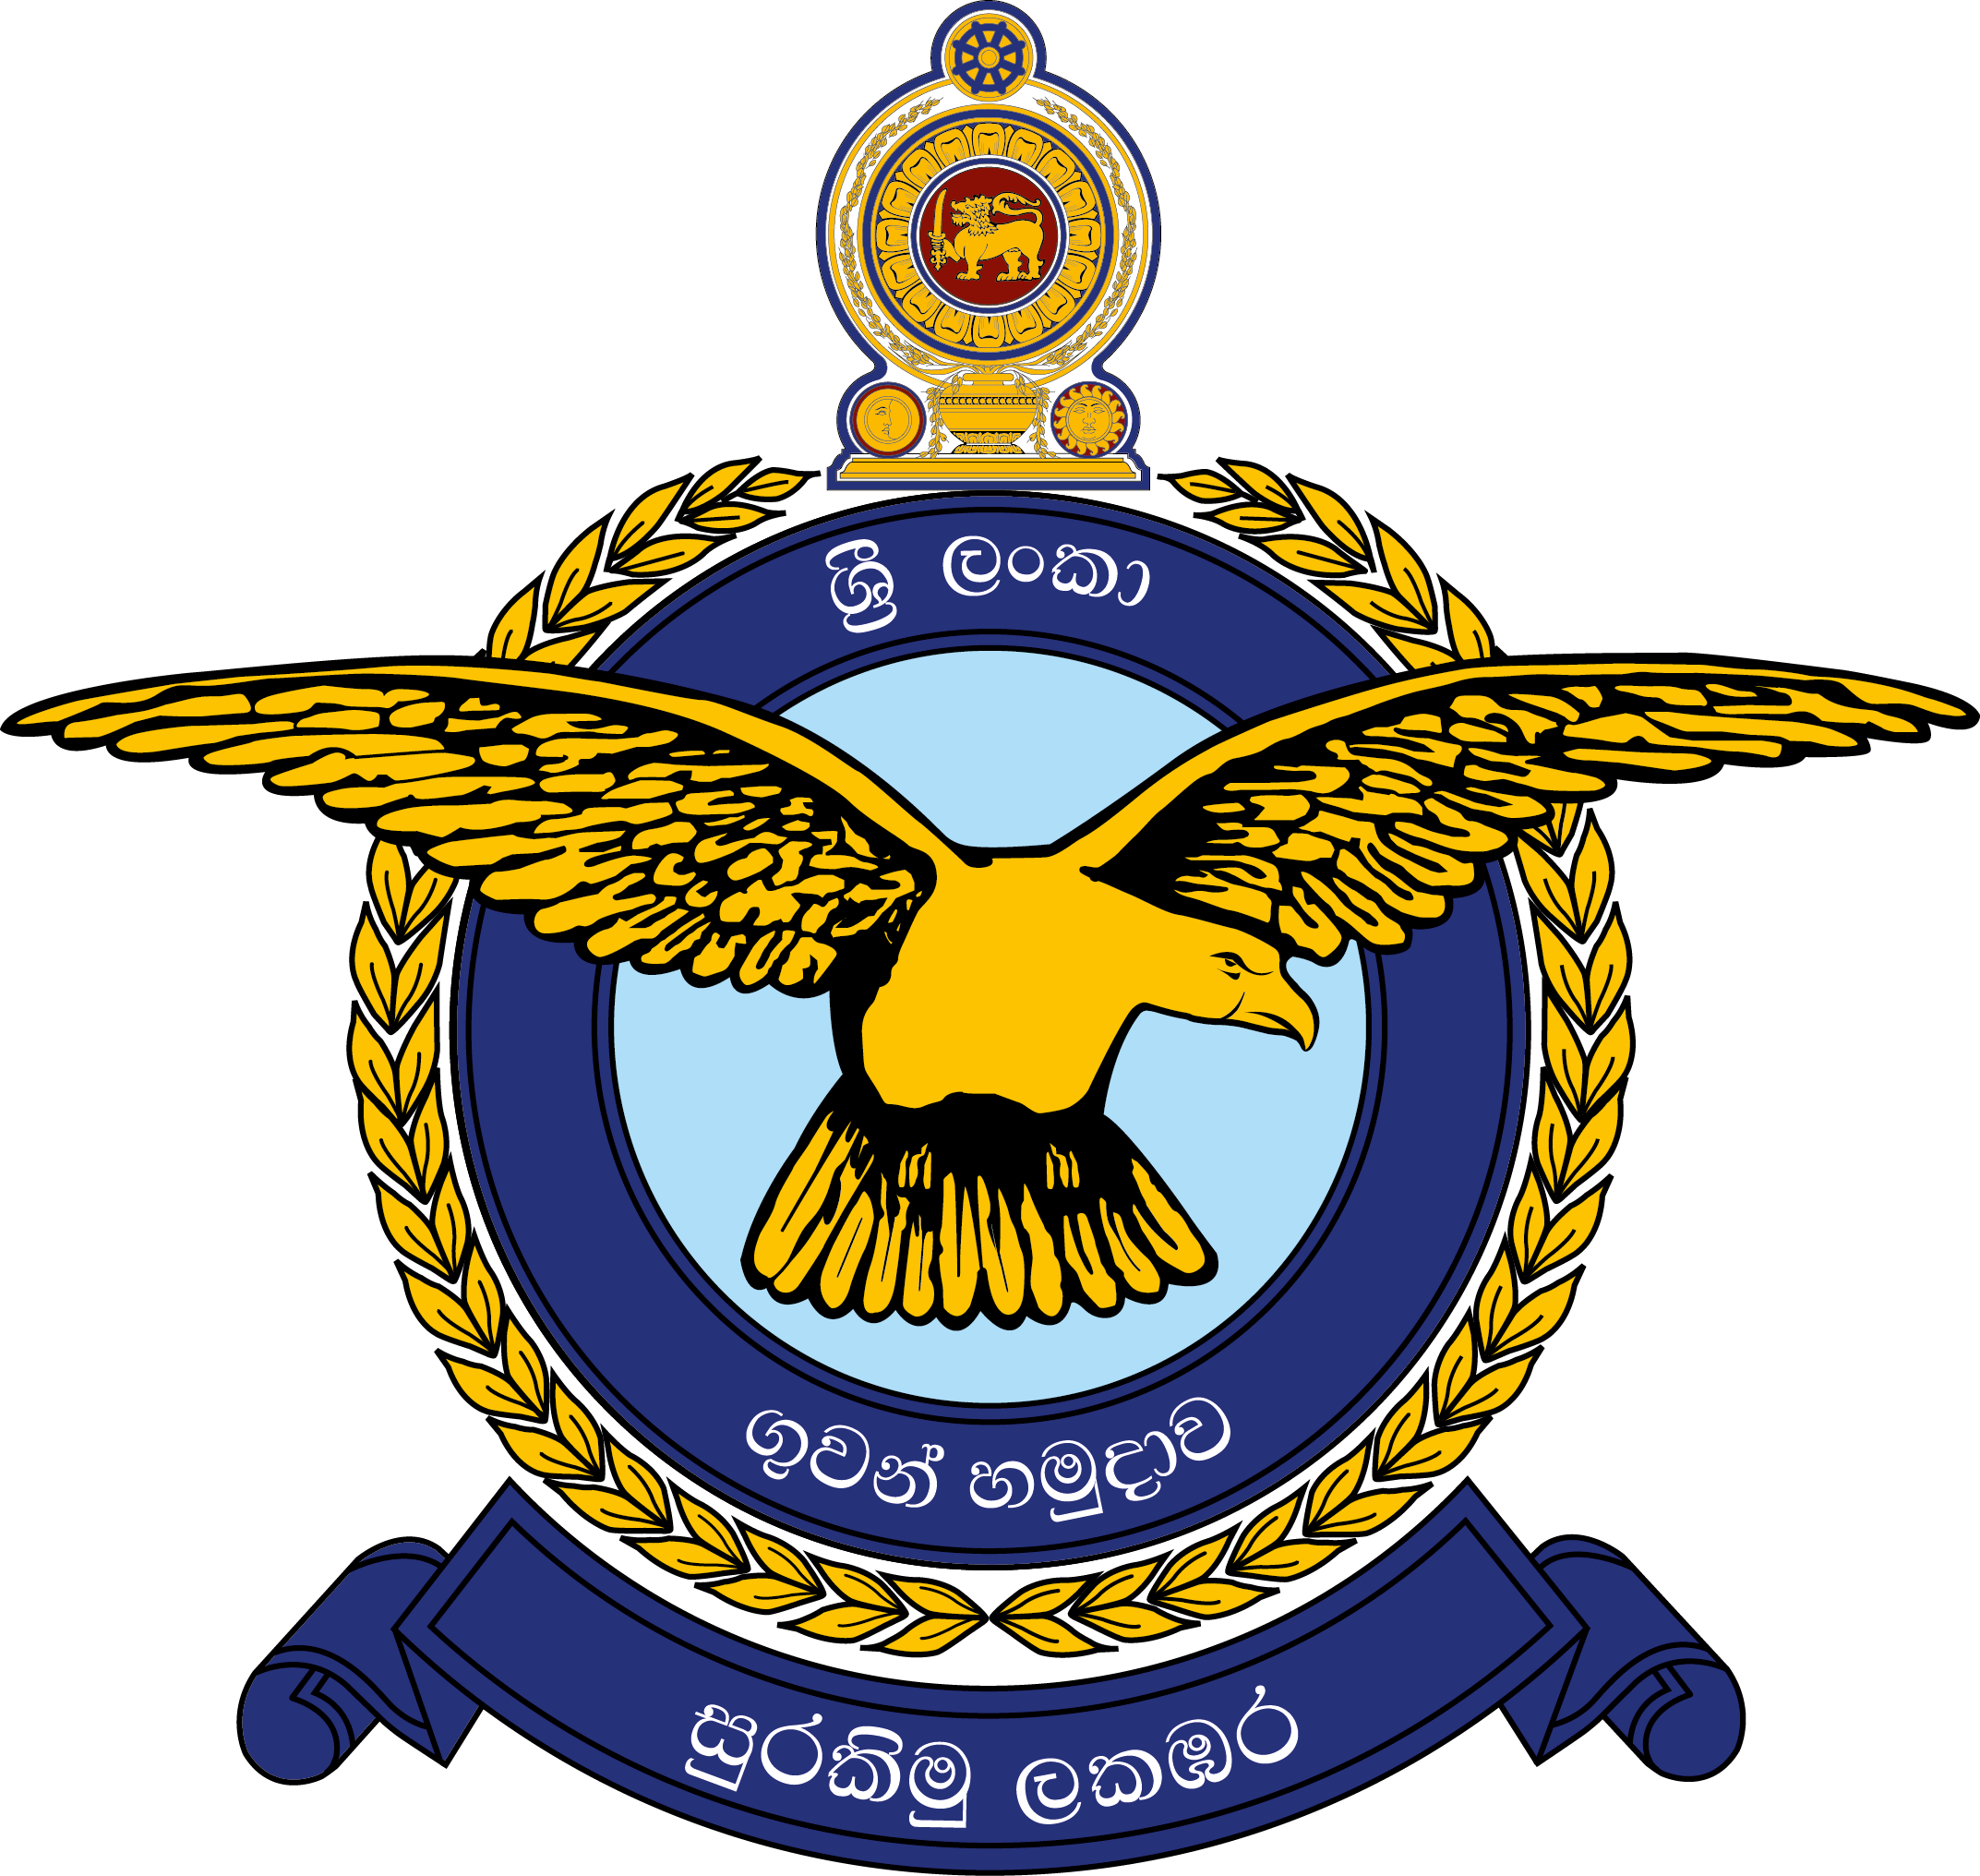 File:Badge of the Sri Lanka Air Force.png Wikimedia Commons